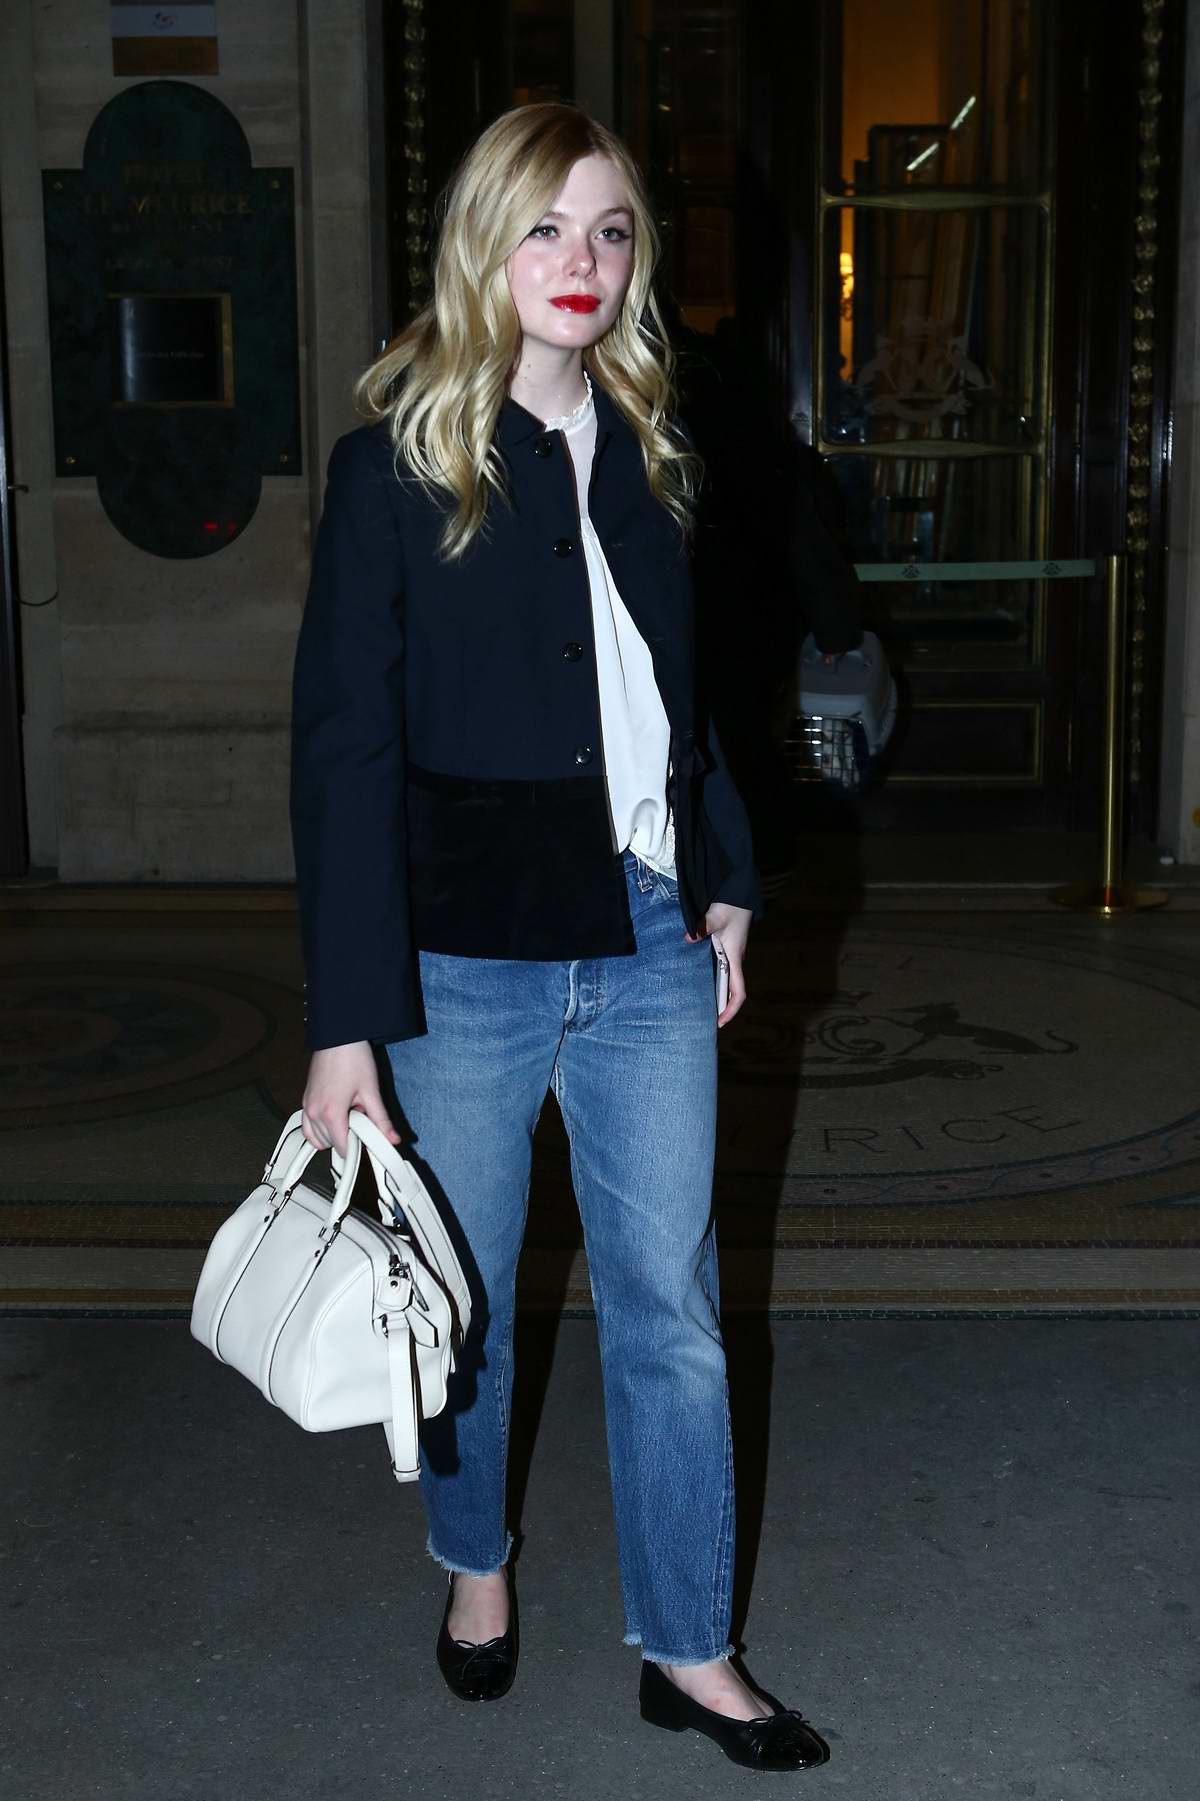 Elle Fanning seen arriving at Pink Mamma in Paris, France